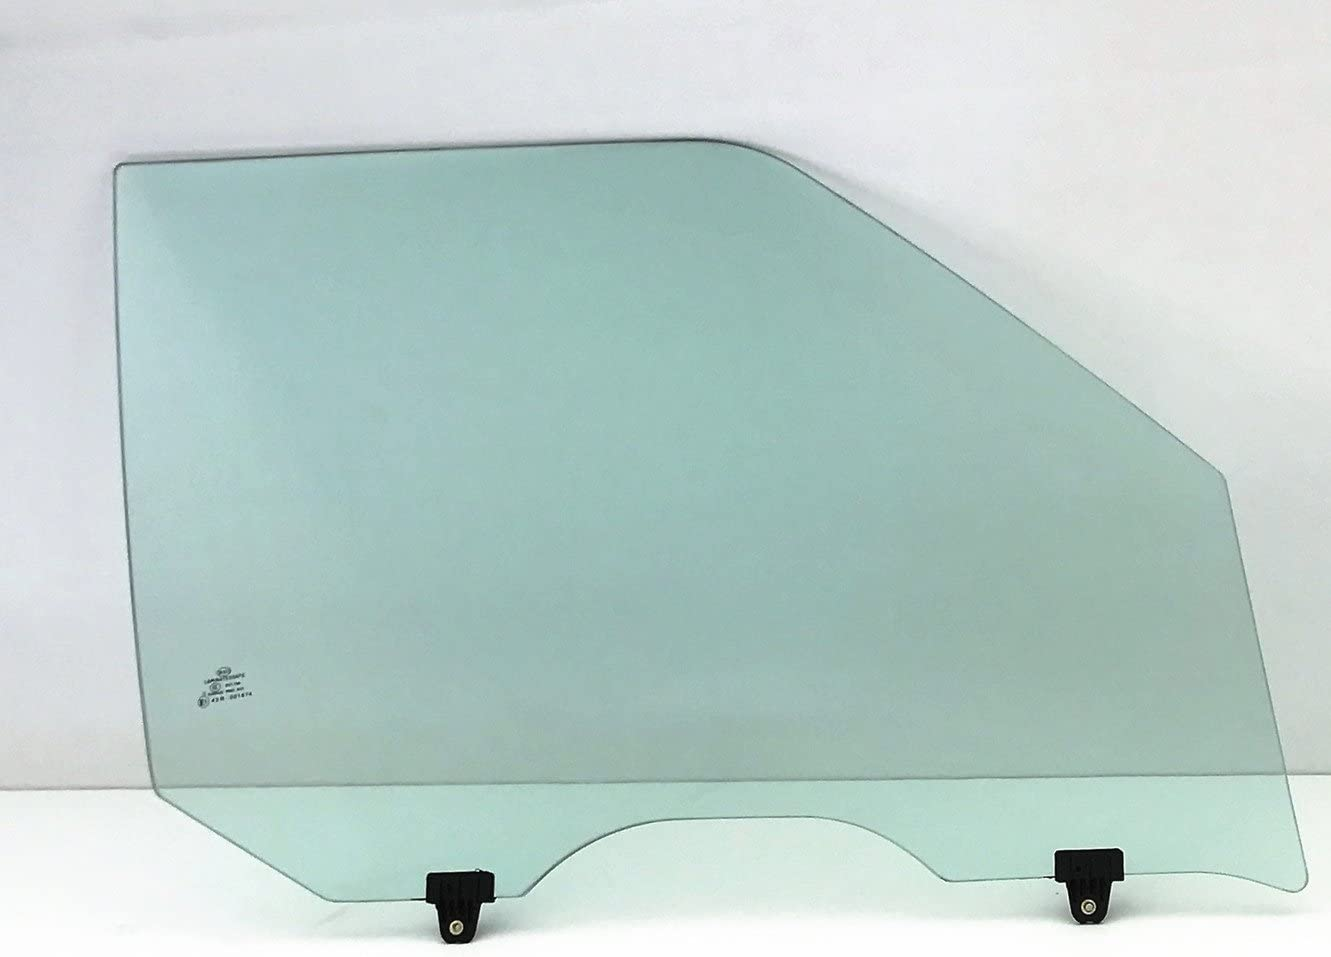 NAGD Compatible with 2010-2015 Lexus RX350 RX450 Driver Side Left Front Door Window Glass Laminated